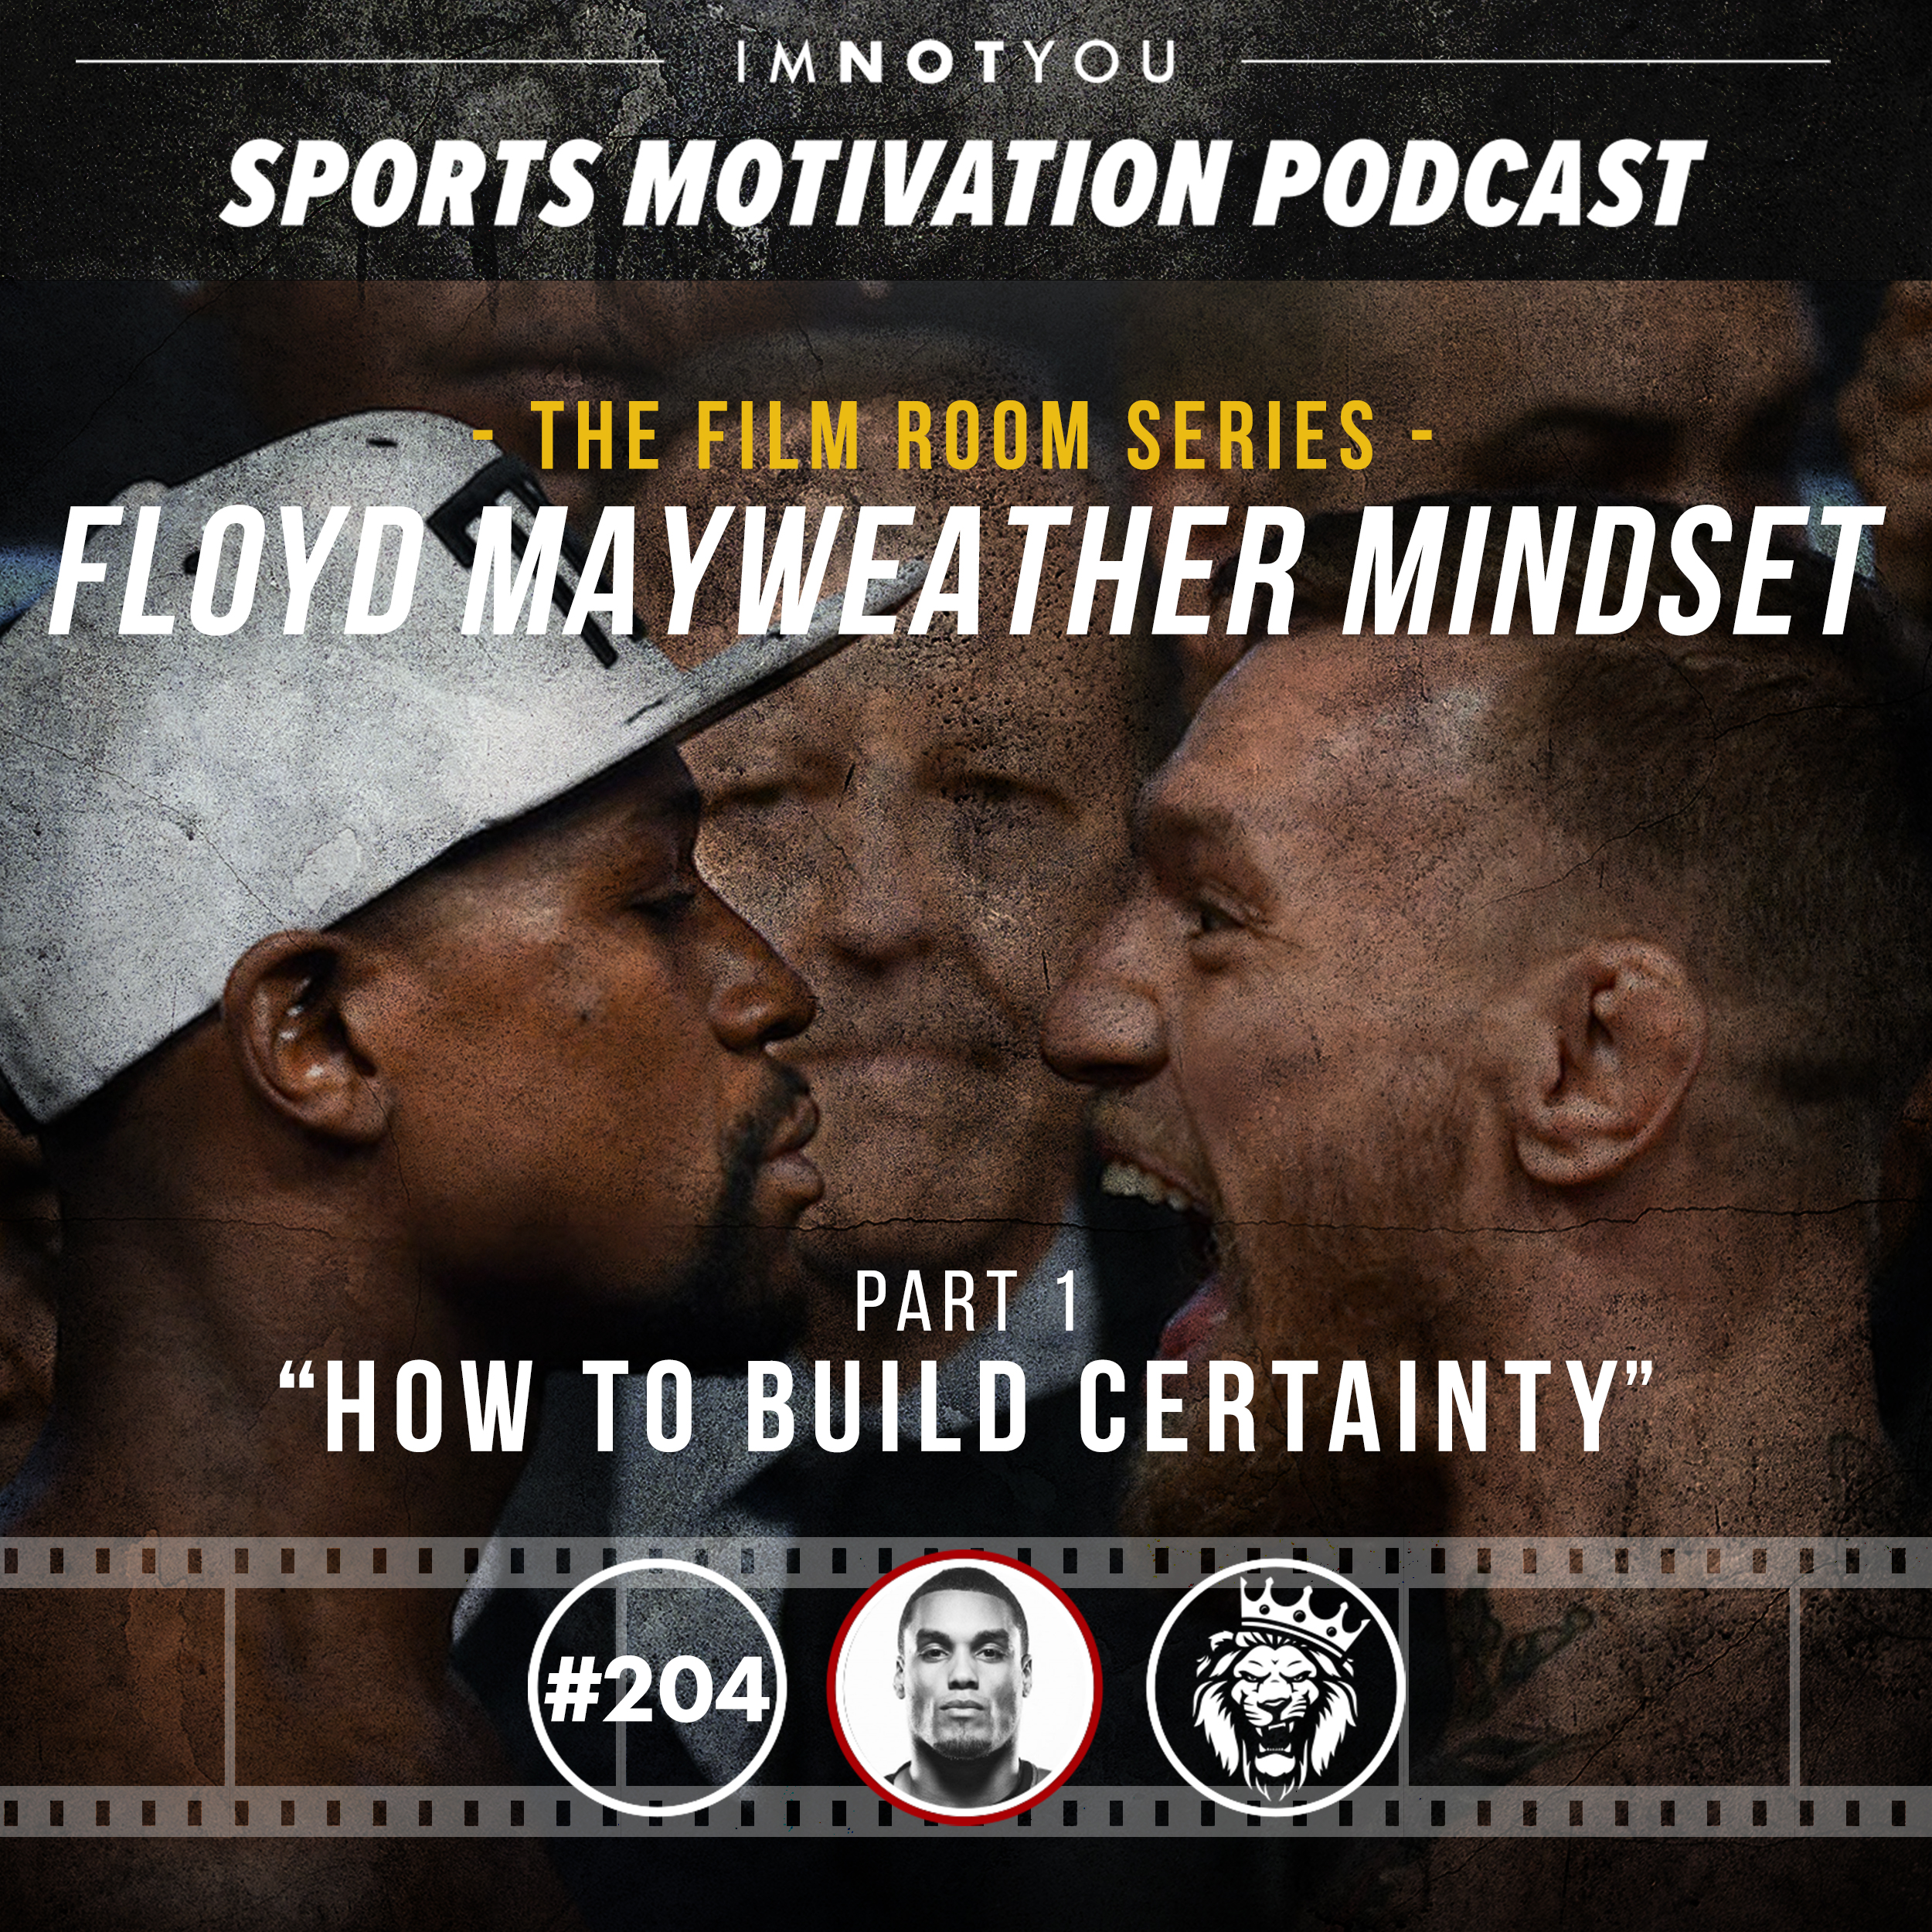 204: The Film Room: Floyd Mayweather Mindset, Pt. 1: How to Build CERTAINTY